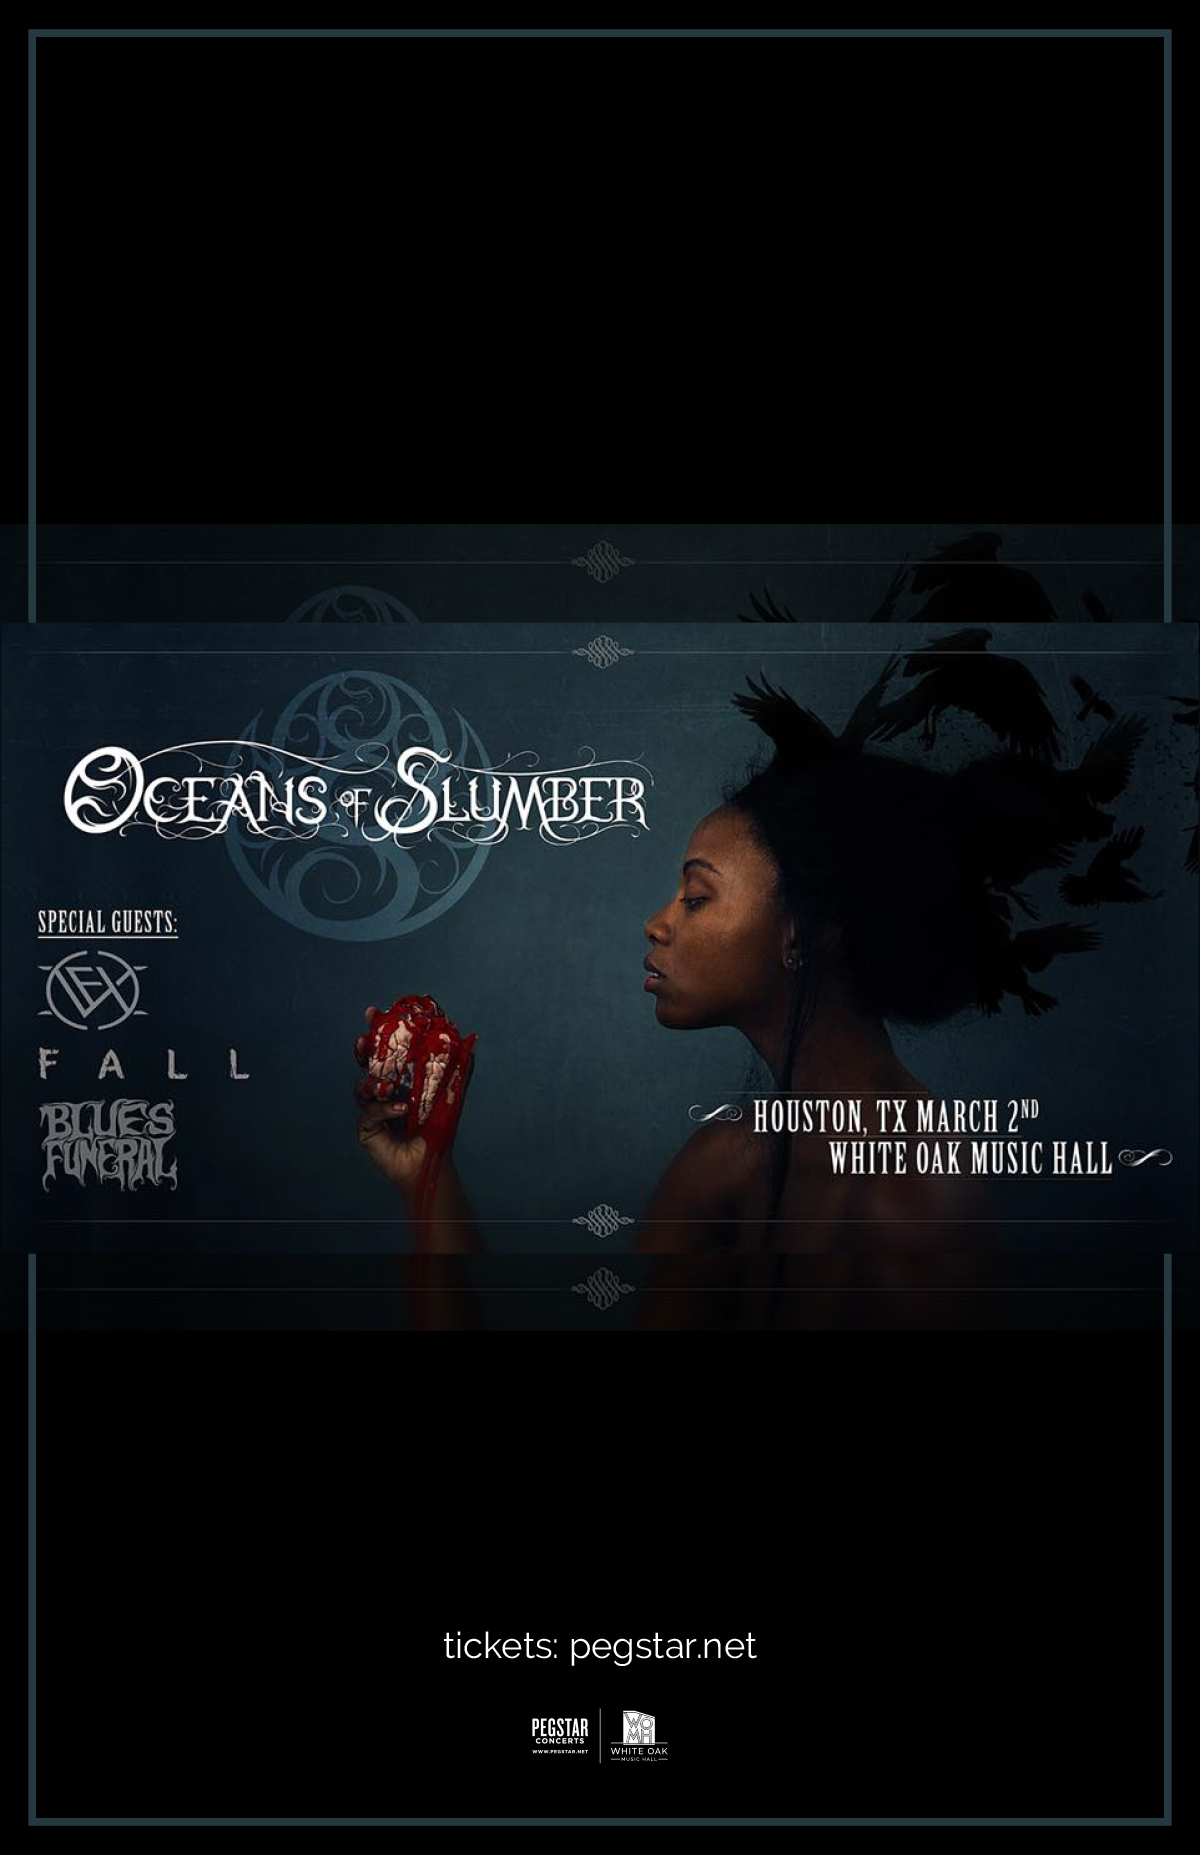 Oceans of Slumber Record Release, Vex, Fall, Blues Funeral